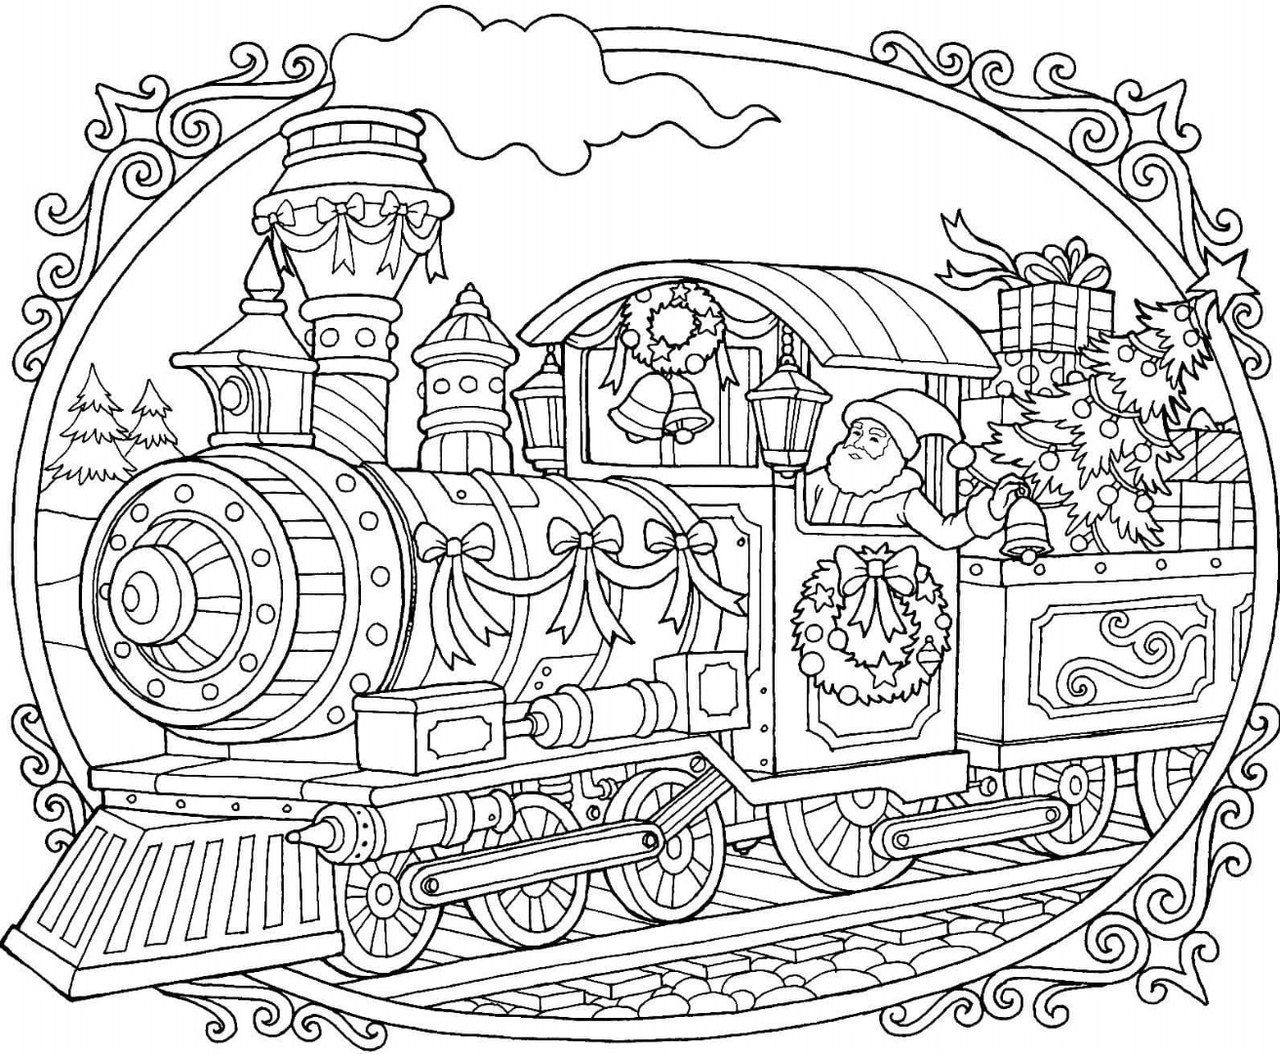 The Christmas Train Coloring Page Happy Holidays Pinterest